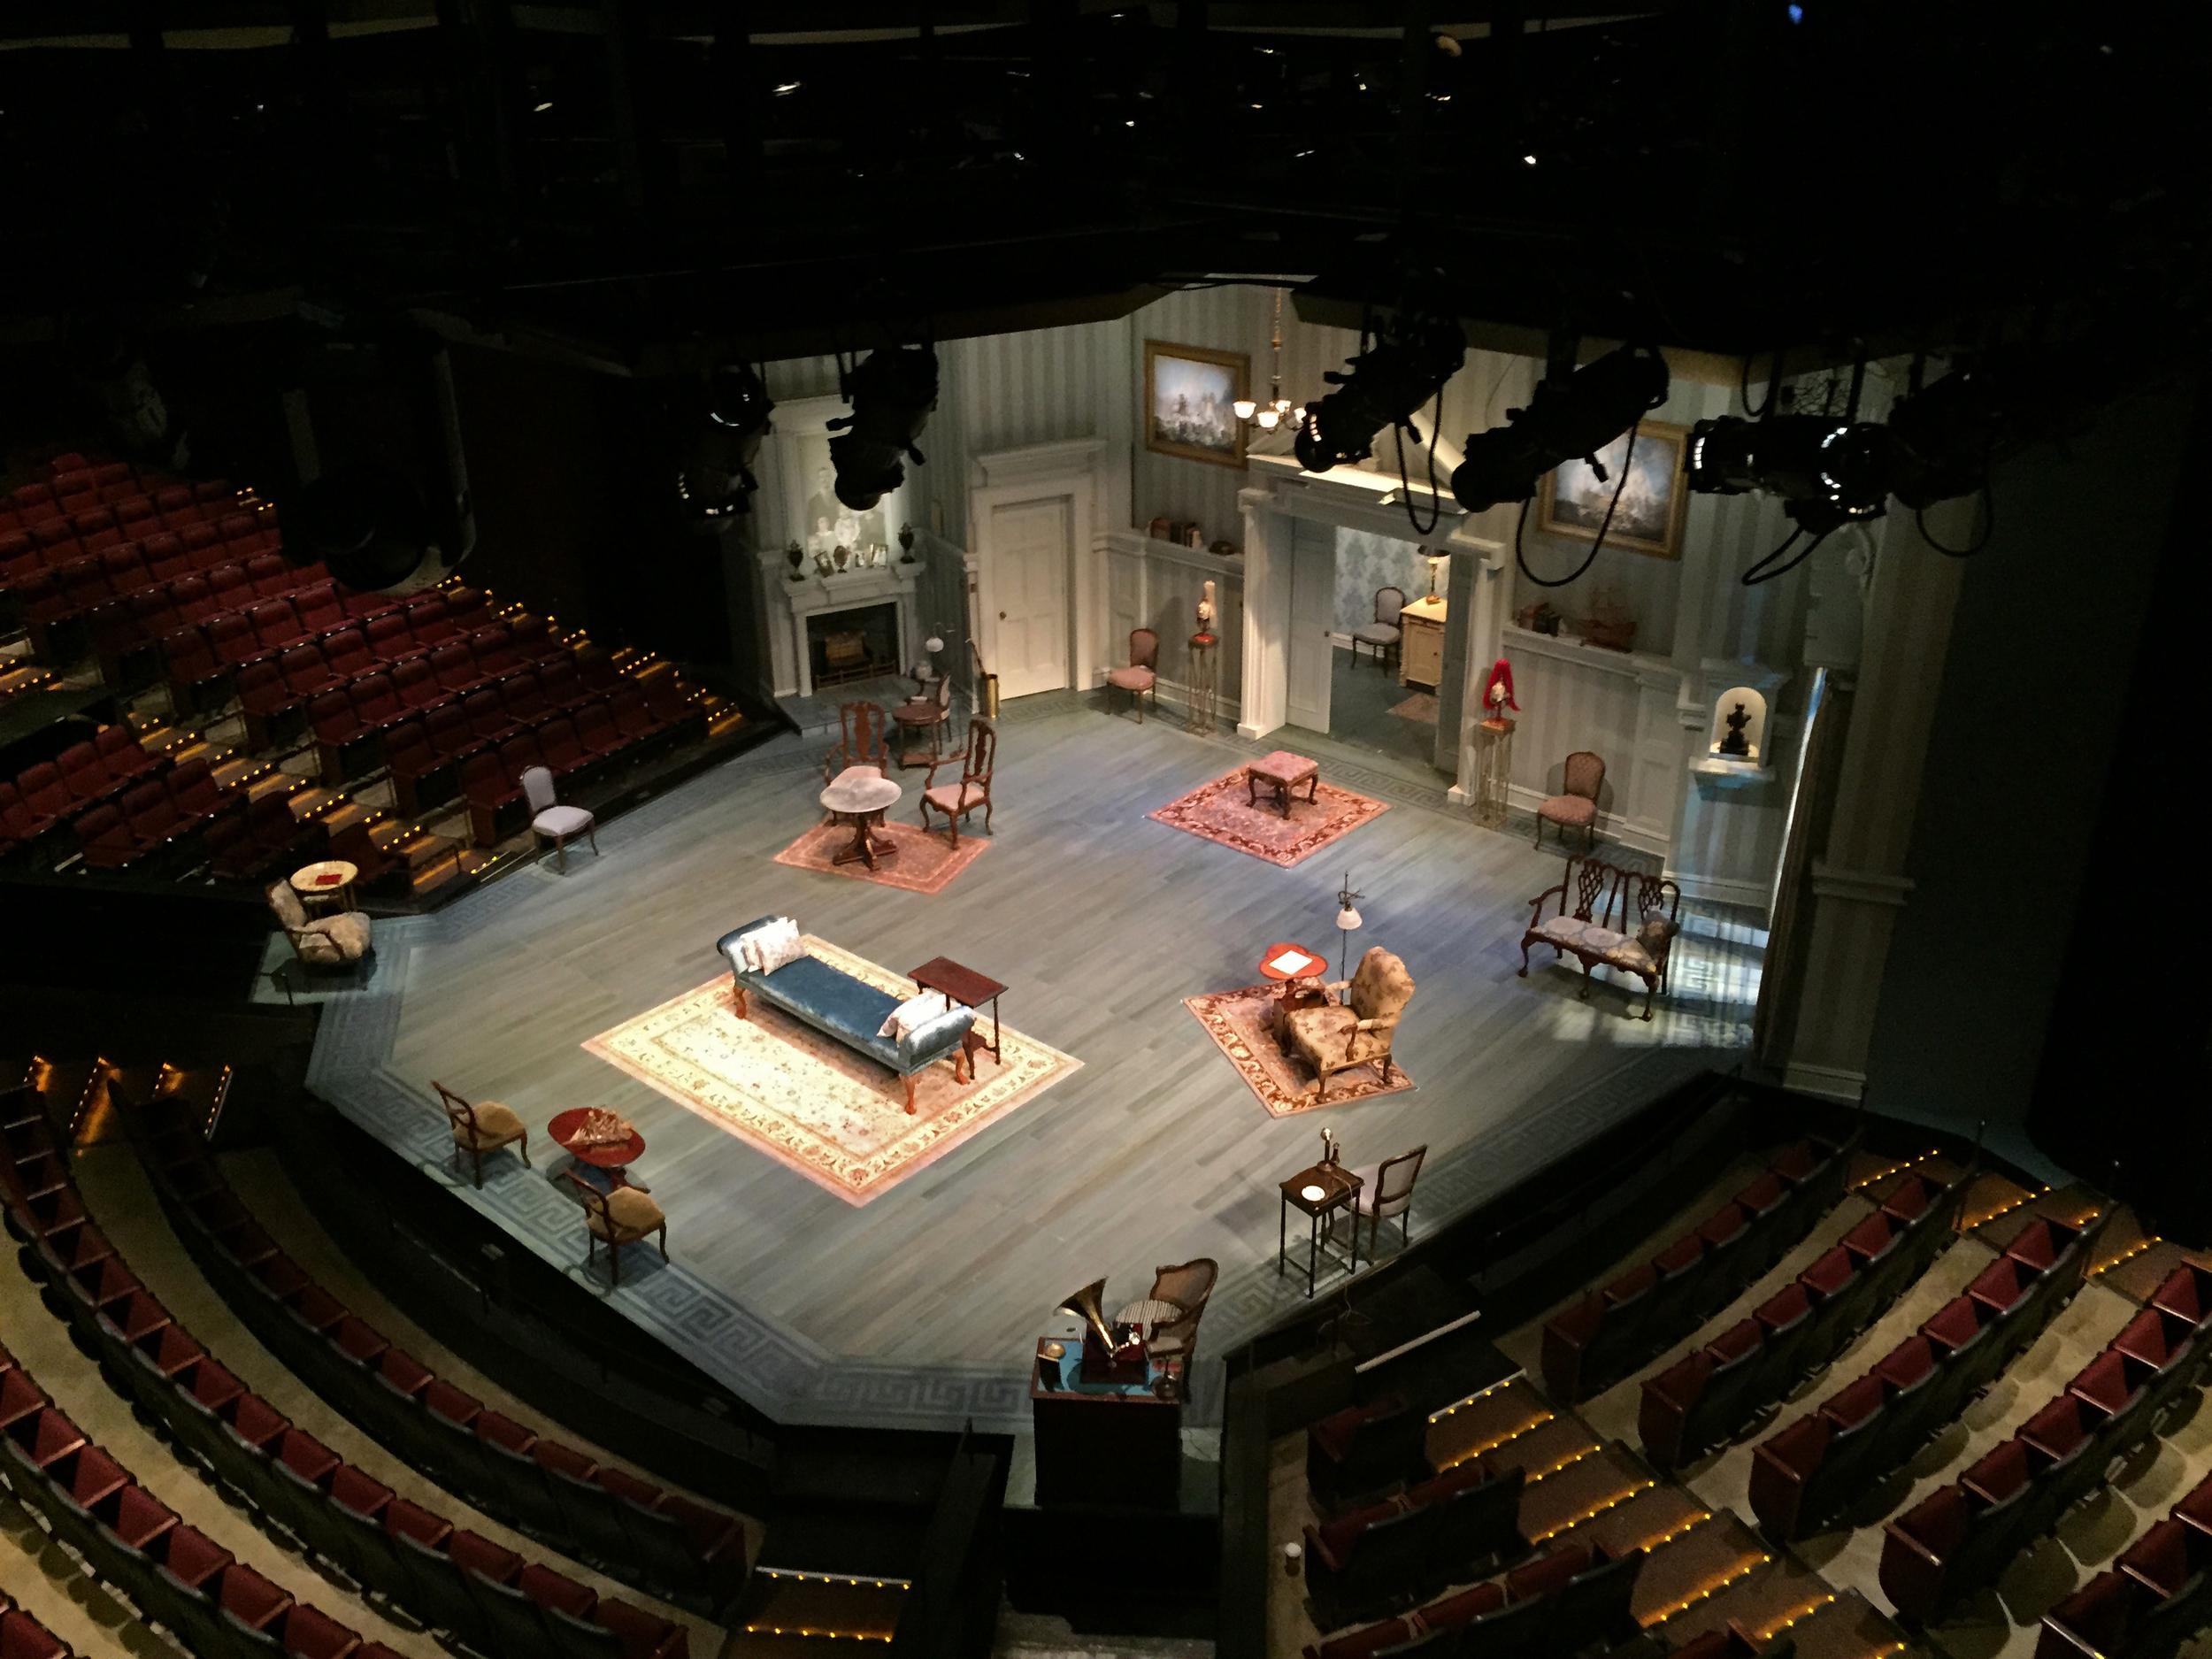 The Winslow Boy, Repertory Theatre of St Louis